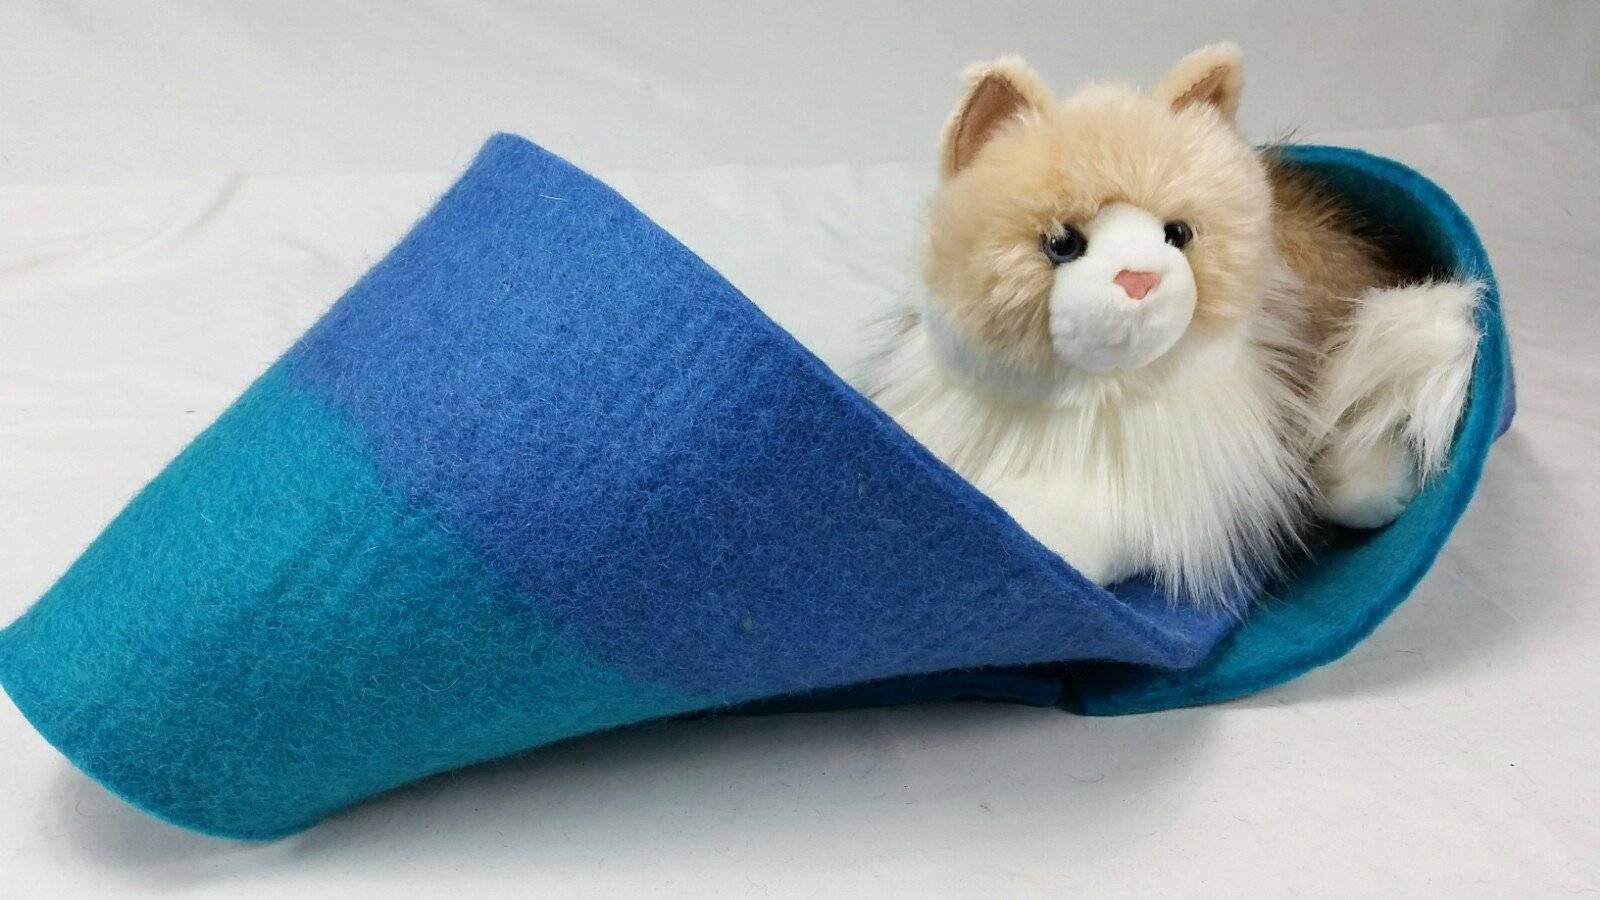 Blue & Teal Kitty Twister